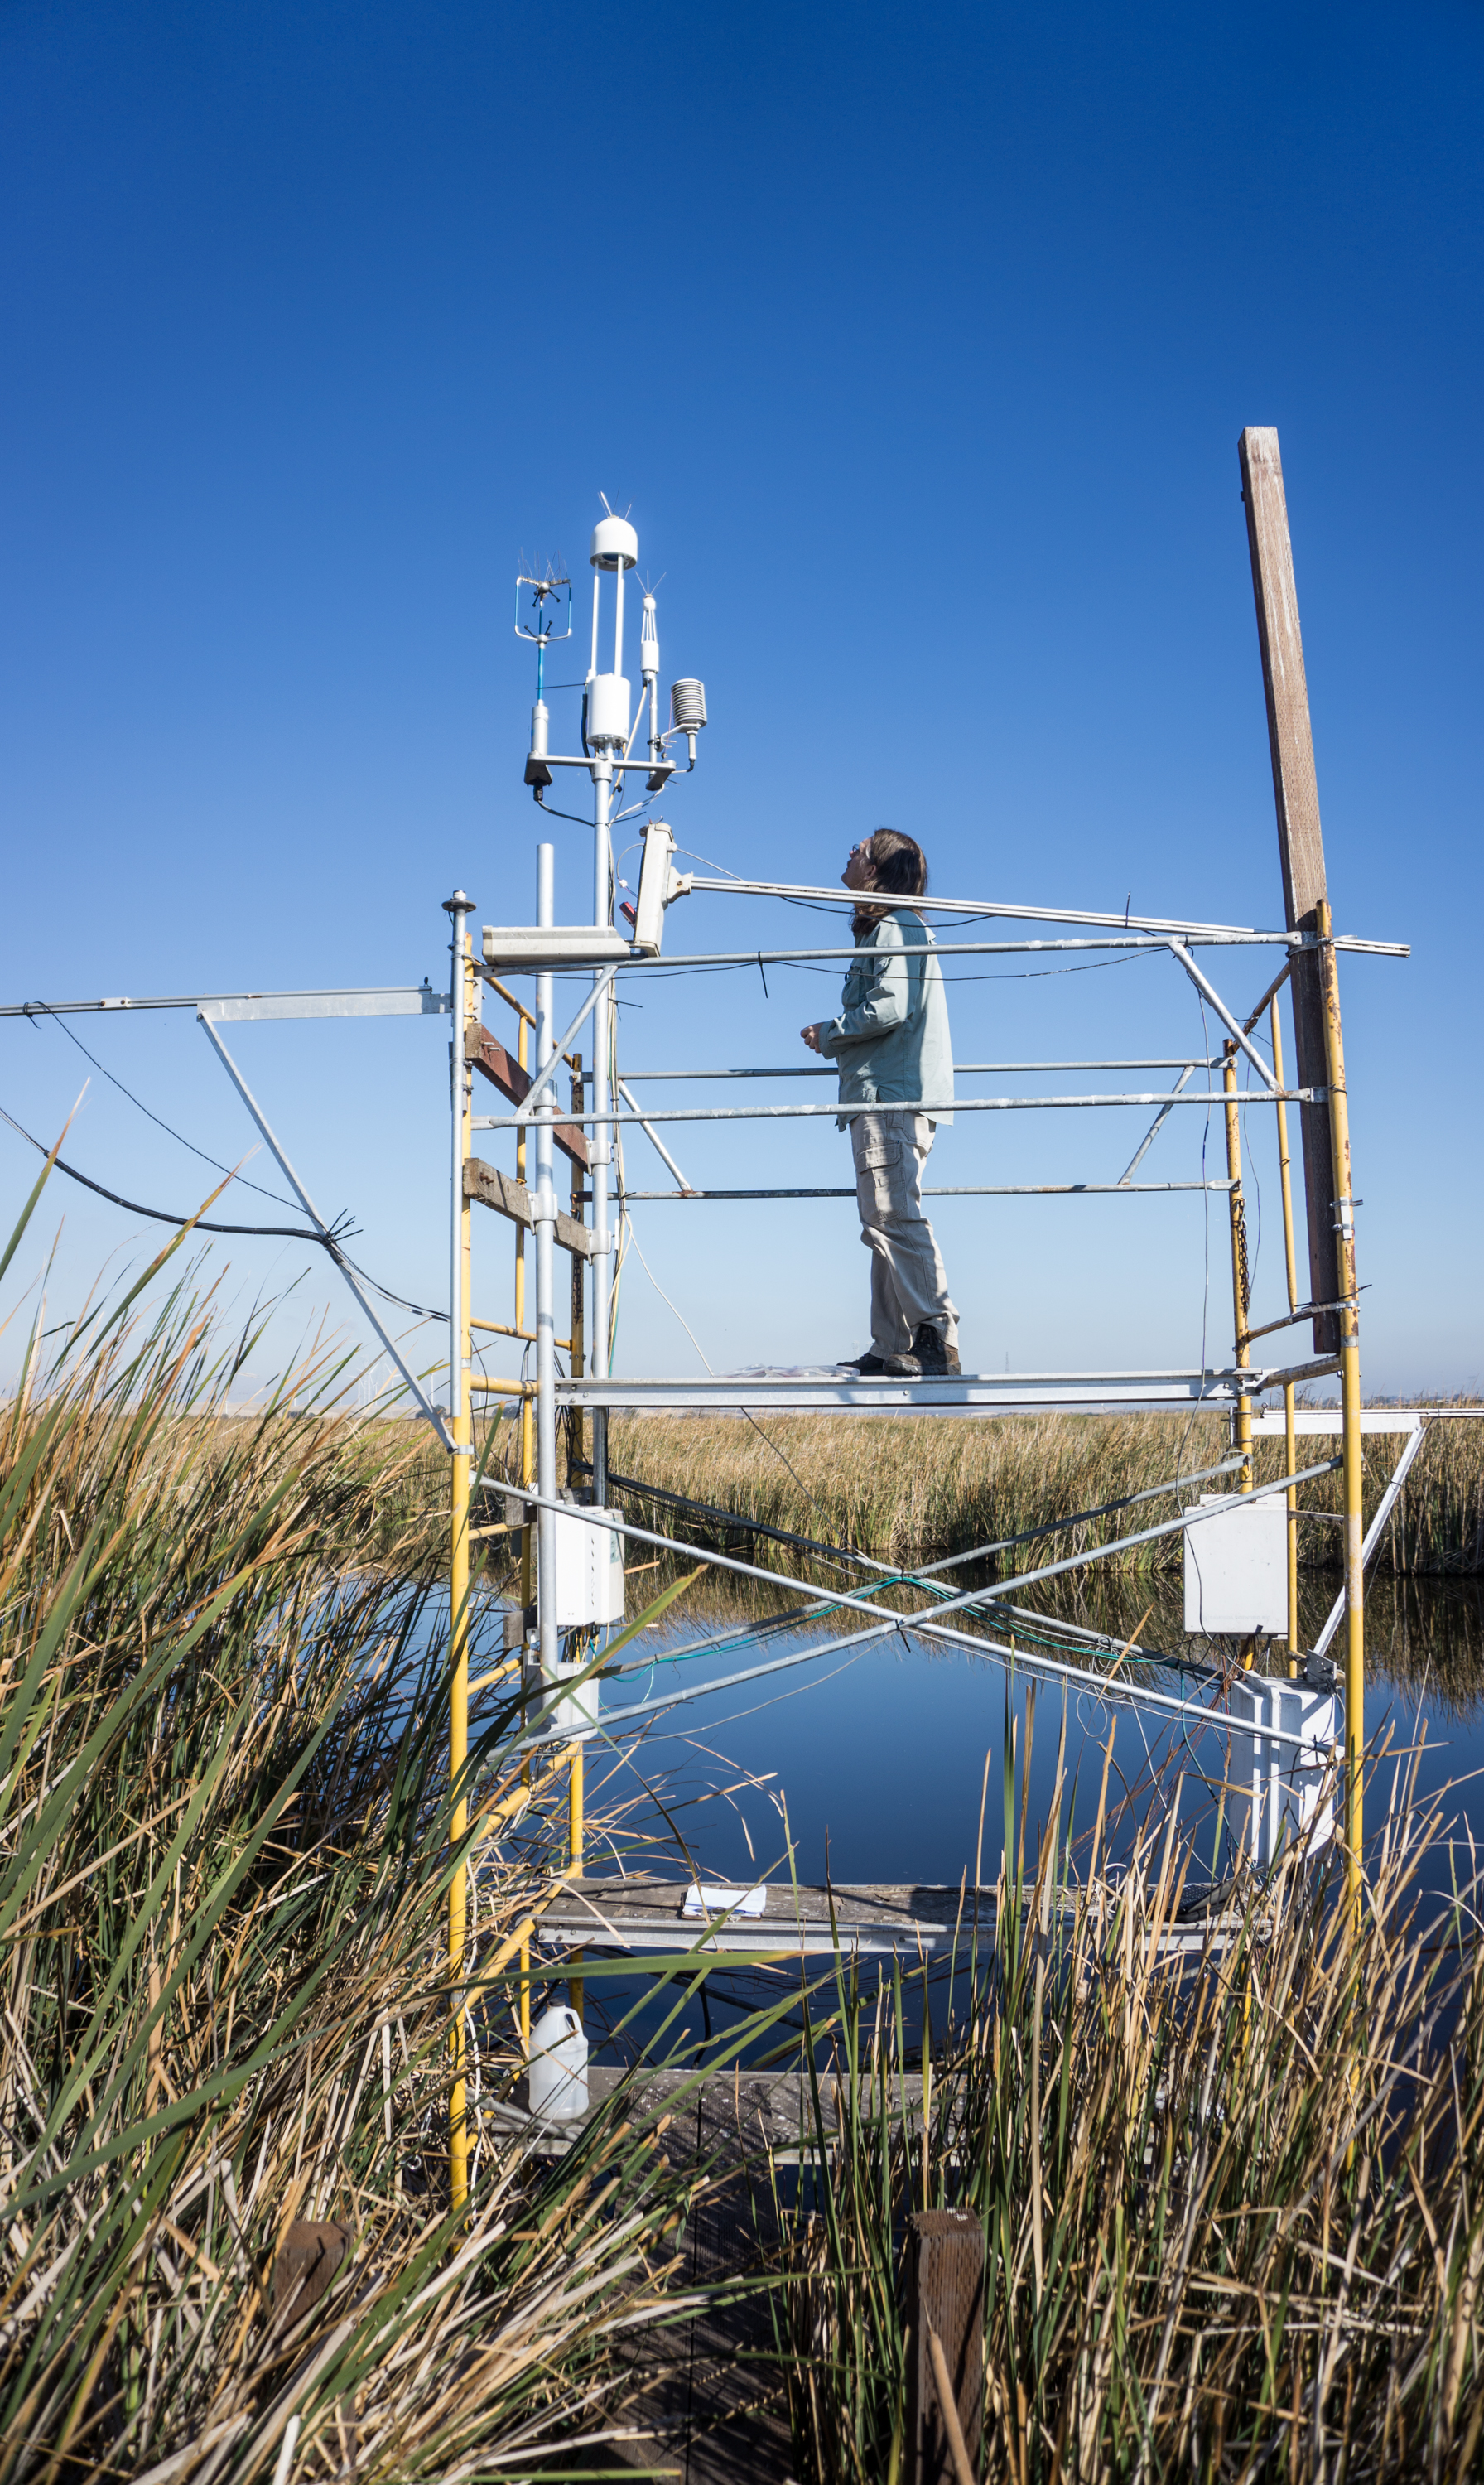 An eddy covariance tower in the Sacramento San Joaquin Delta continuously measures the exchange of greenhouse gases, energy, and water to understand the climatic benefit of these restored, managed wetlands. Photo: Kyle Hemes